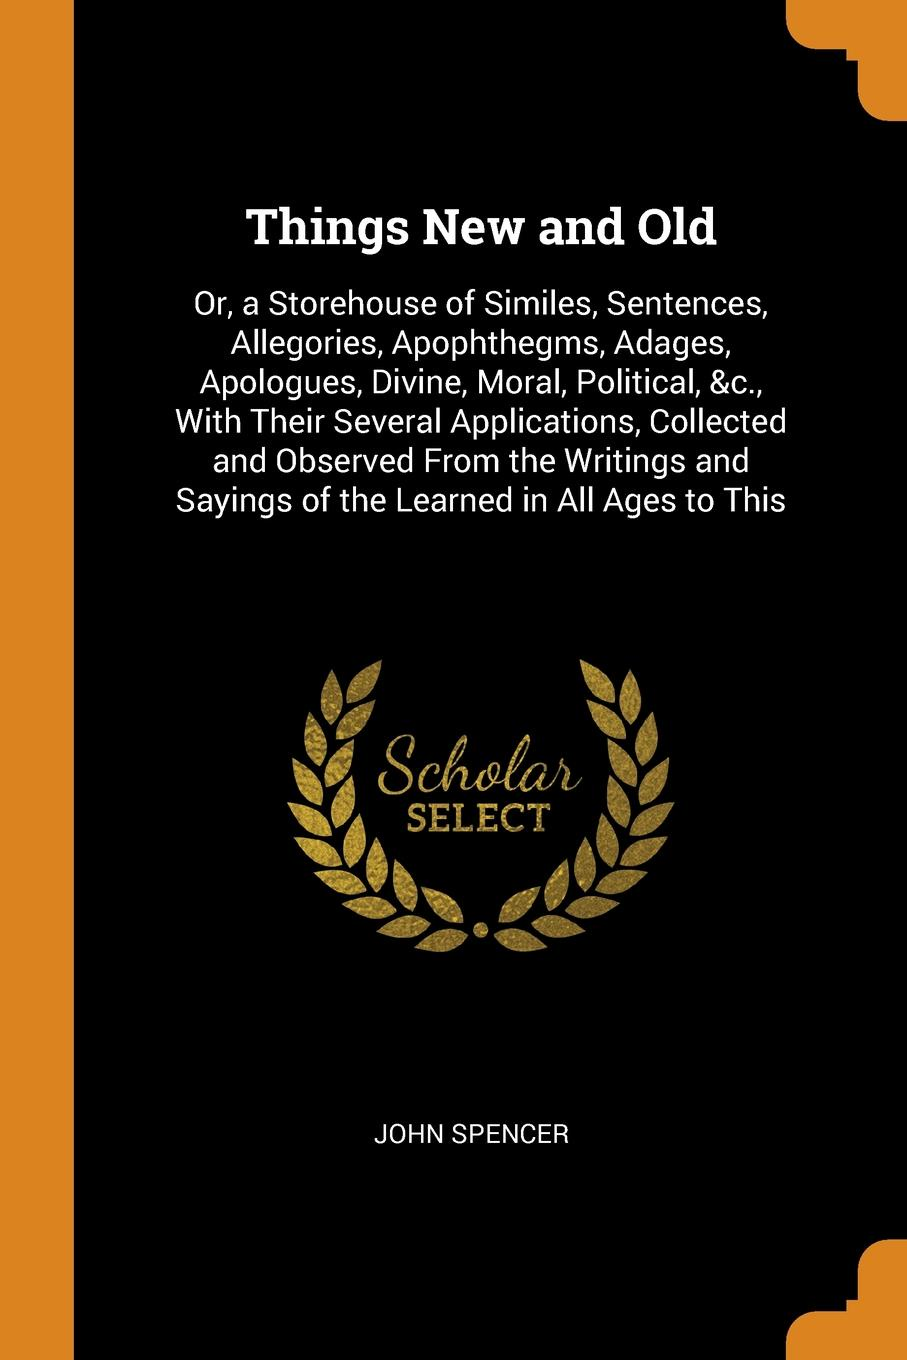 Things New and Old. Or, a Storehouse of Similes, Sentences, Allegories, Apophthegms, Adages, Apologues, Divine, Moral, Political, &c., With Their Several Applications, Collected and Observed From the Writings and Sayings of the Learned in All Ages...